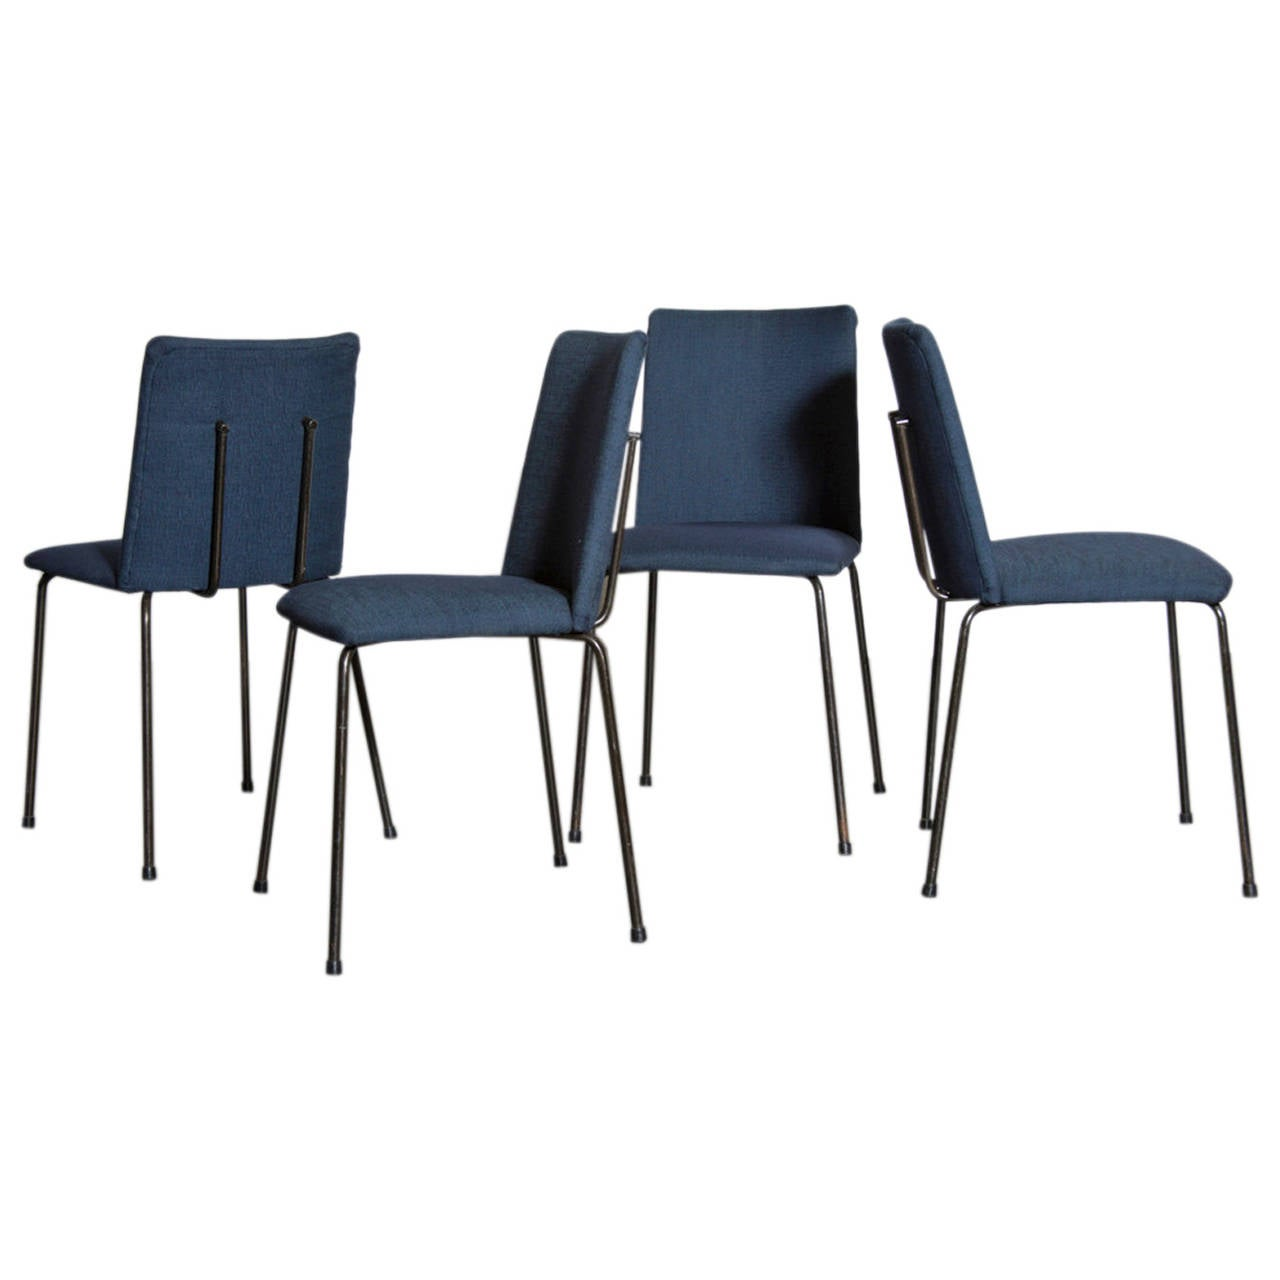 Minimalist Desk Chair Set Of 4 Minimalist Ap Originals Dining Or Office Chairs